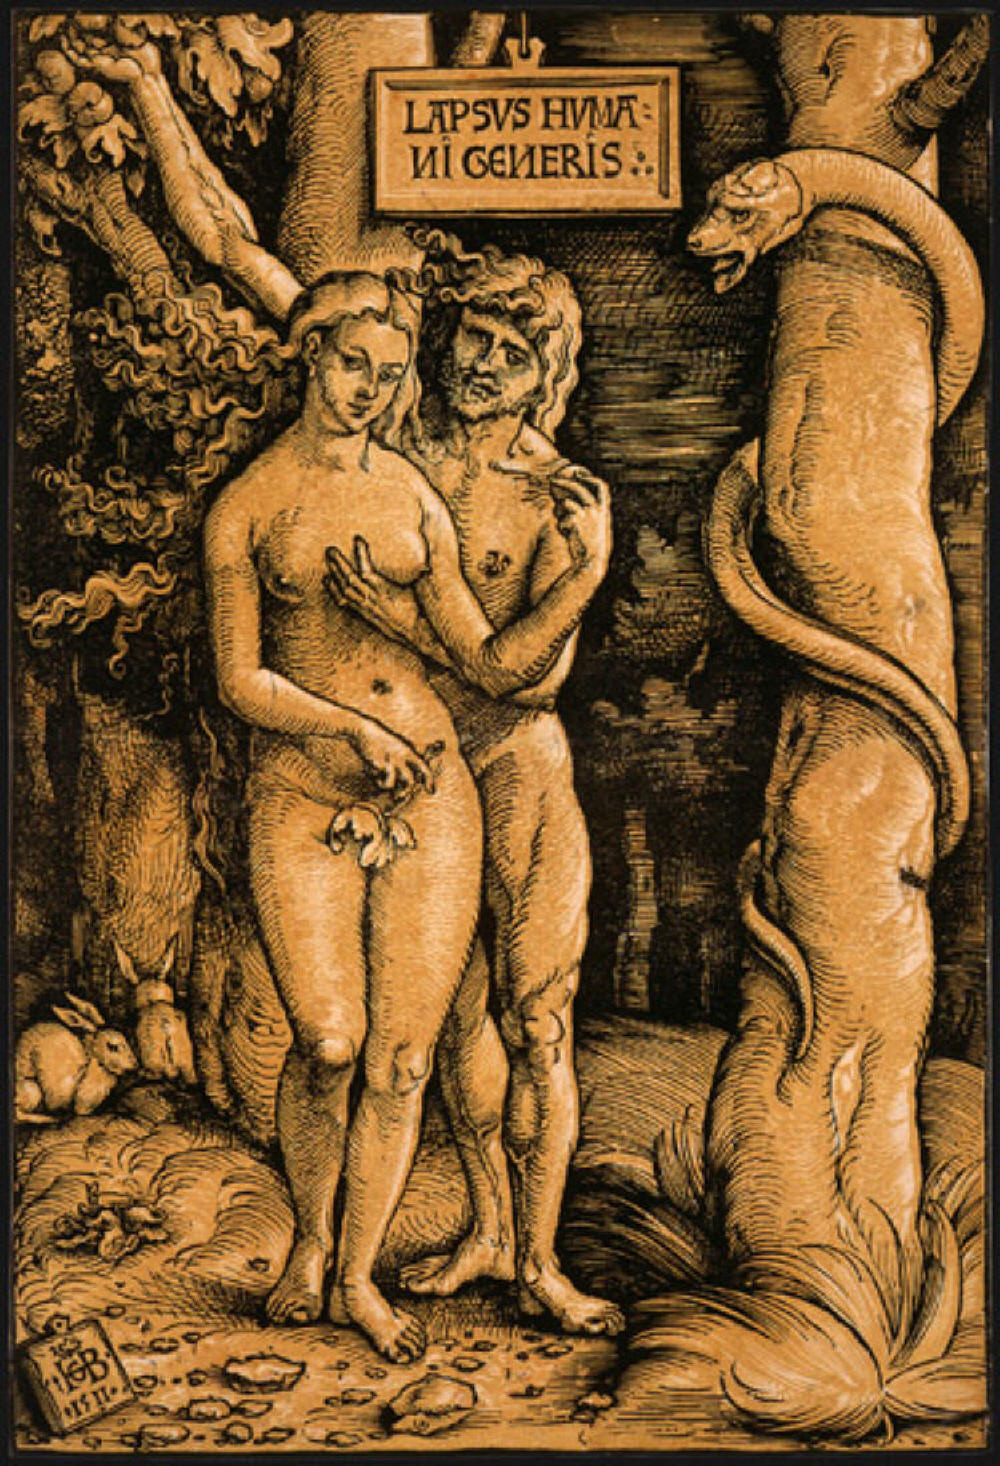 dam and Eve and the serpent in the Garden of Eden.